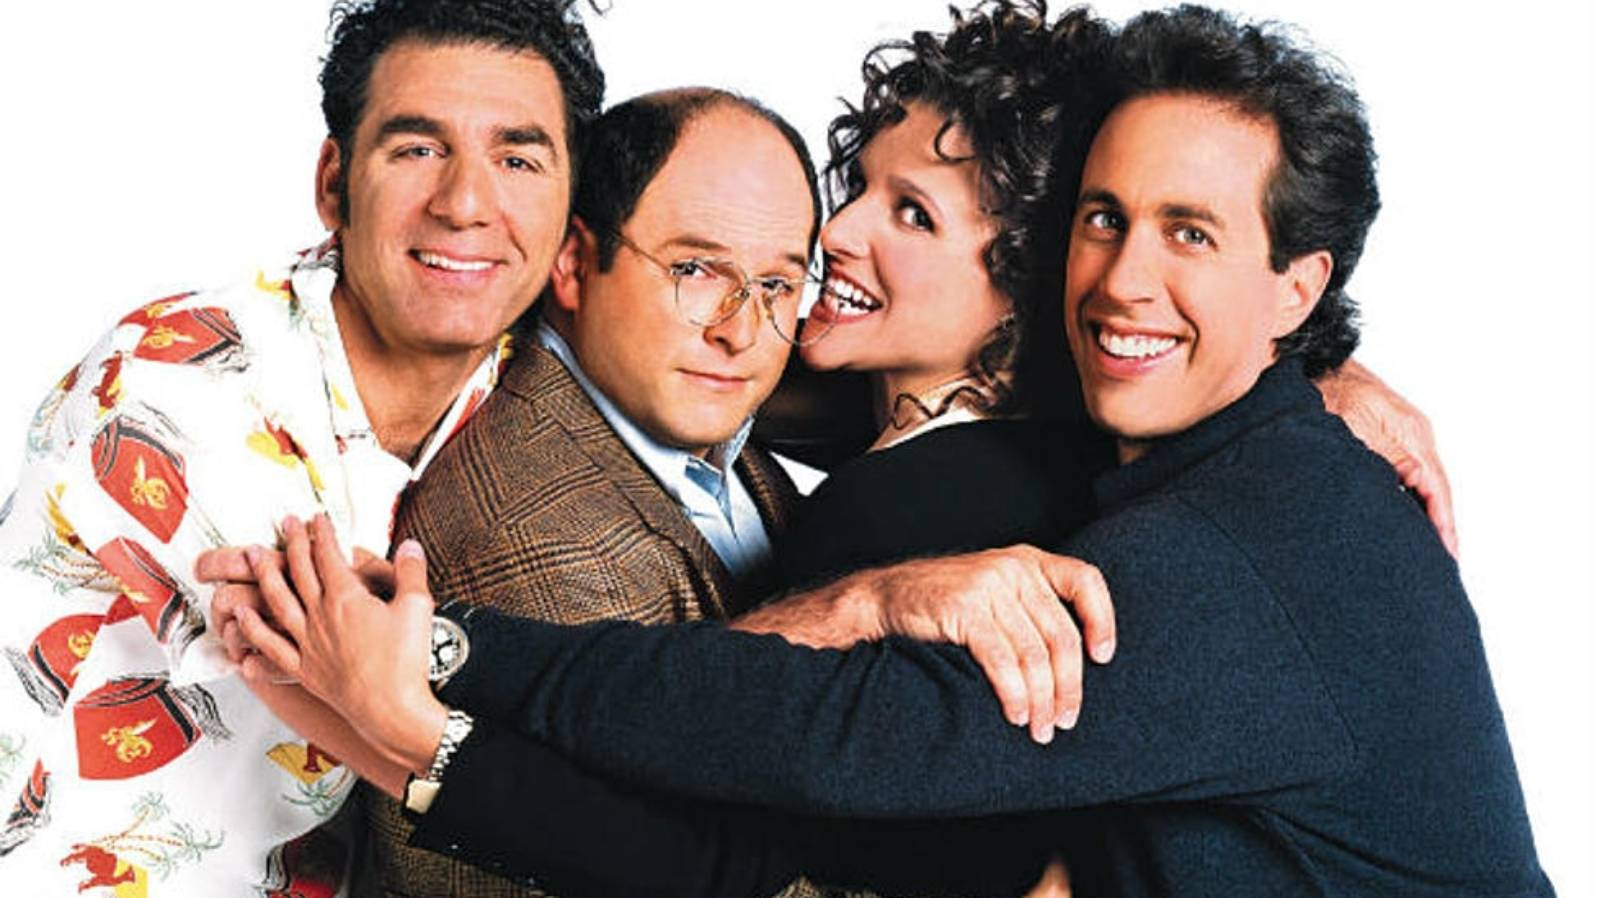 Seinfeld's coming to Netflix - these are the best episodes to watch